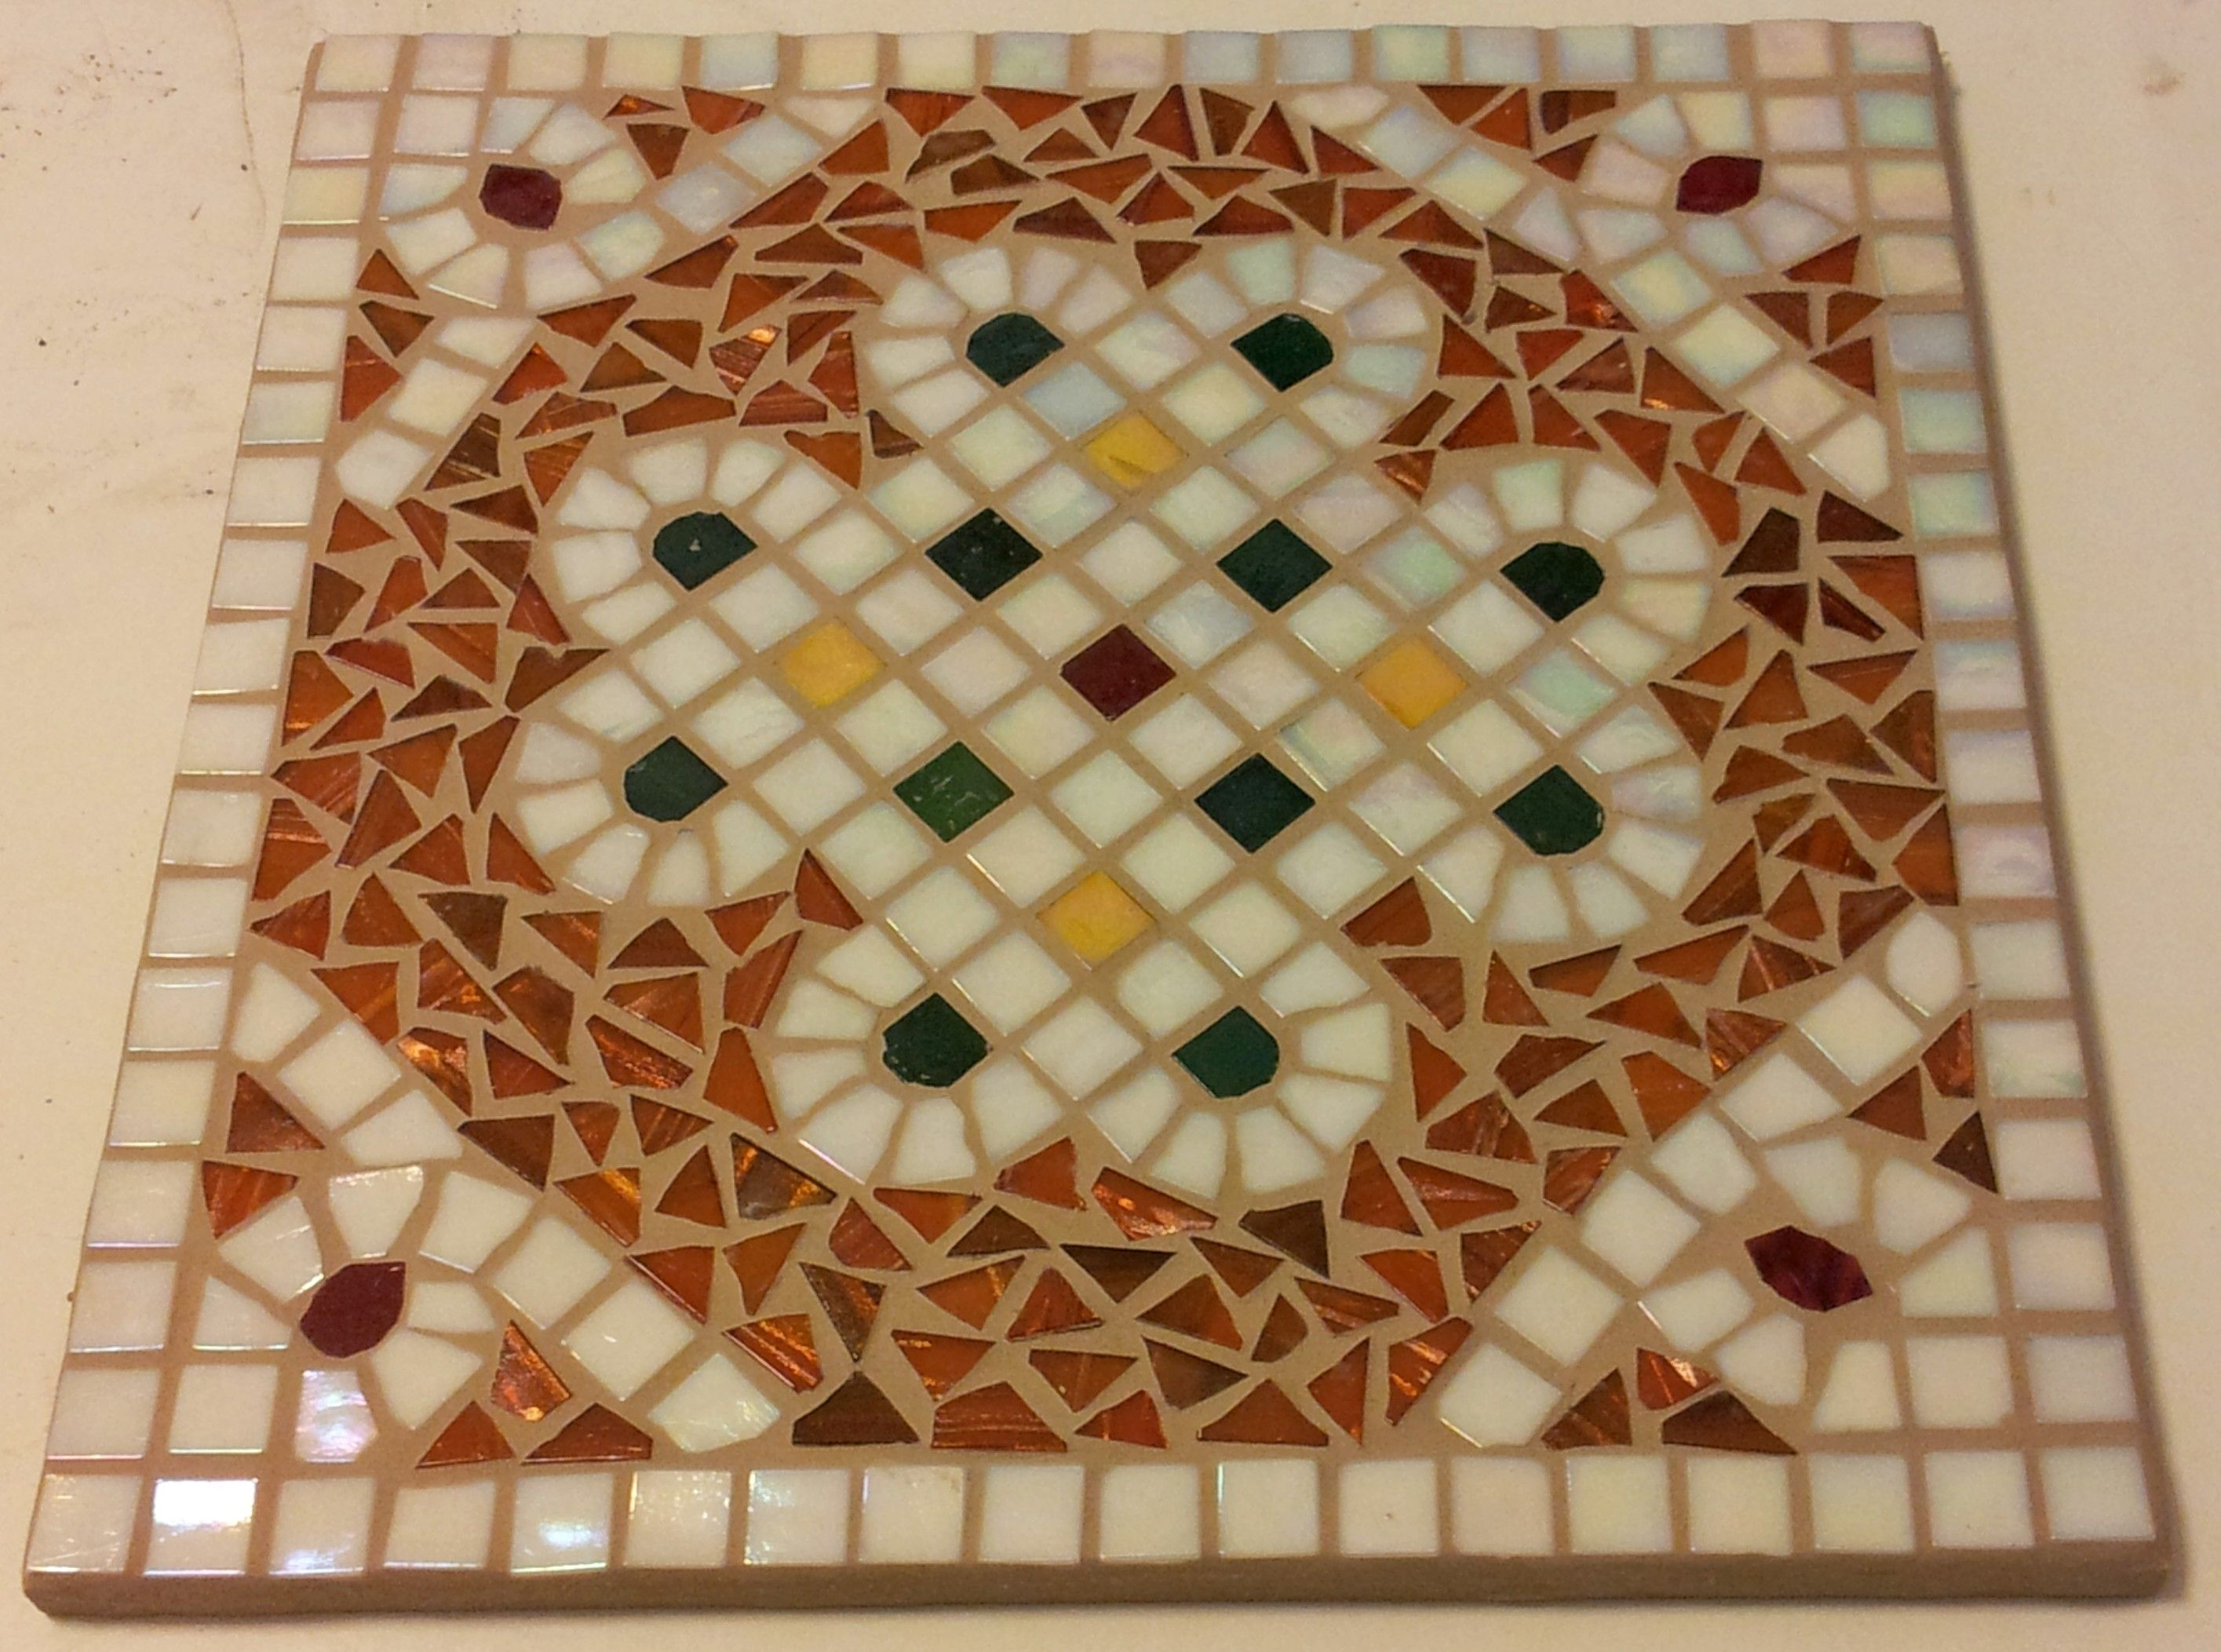 Mosaic Patterns for Beginners   Mosaic for Beginners – Fall Courses ...